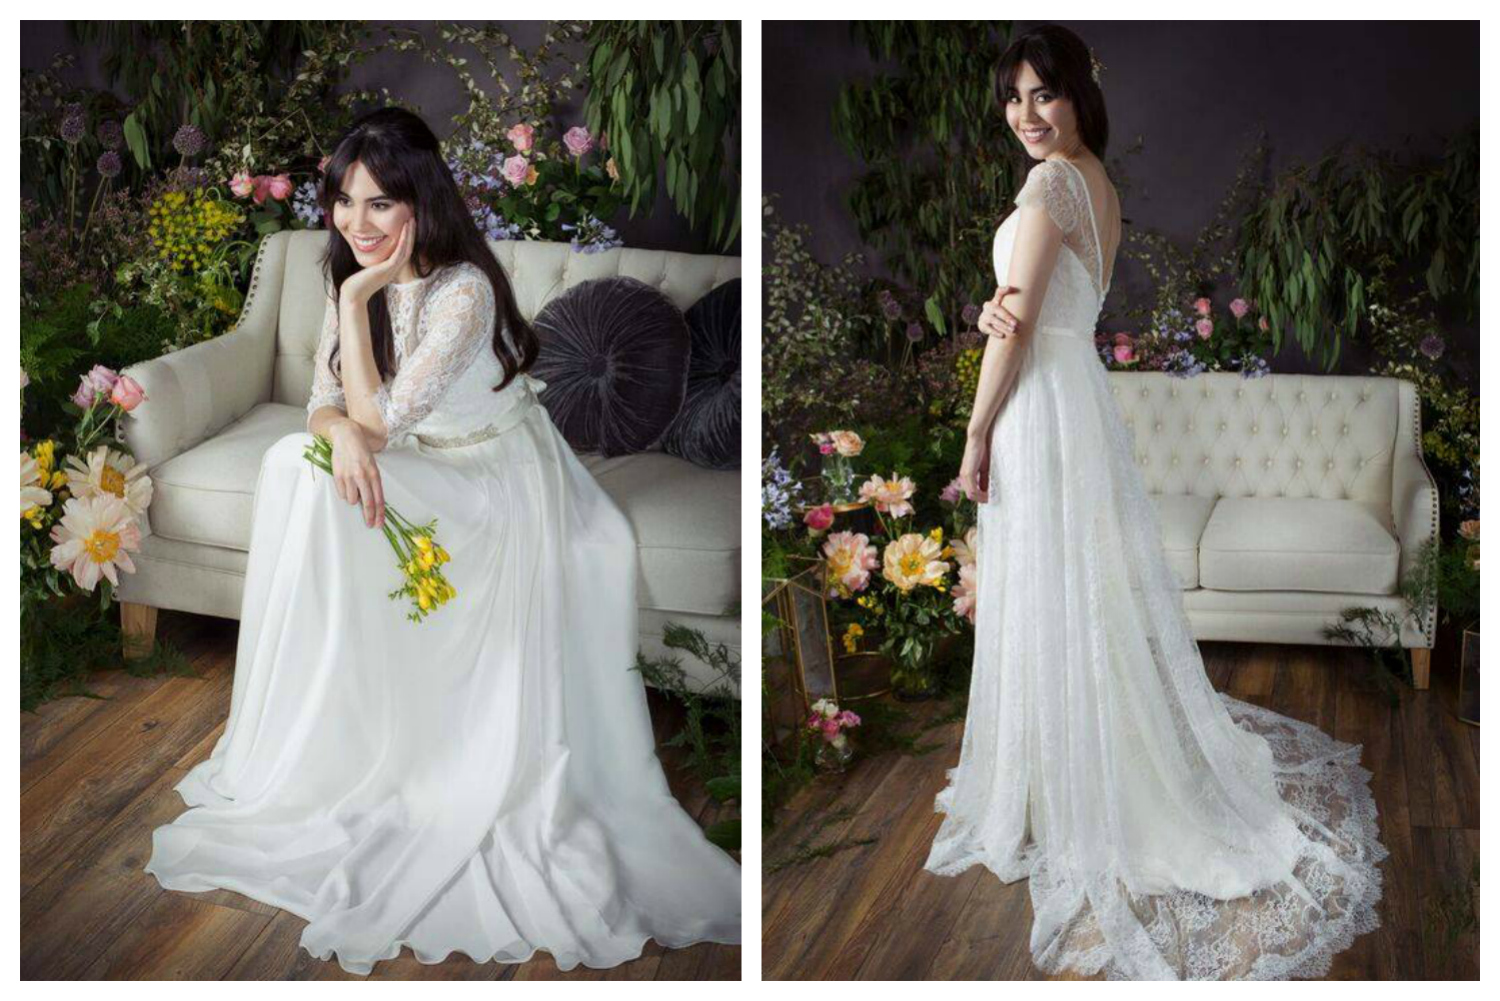 NAOMI NEOH 'EDEN' – THE 2017 BRIDAL COLLECTION